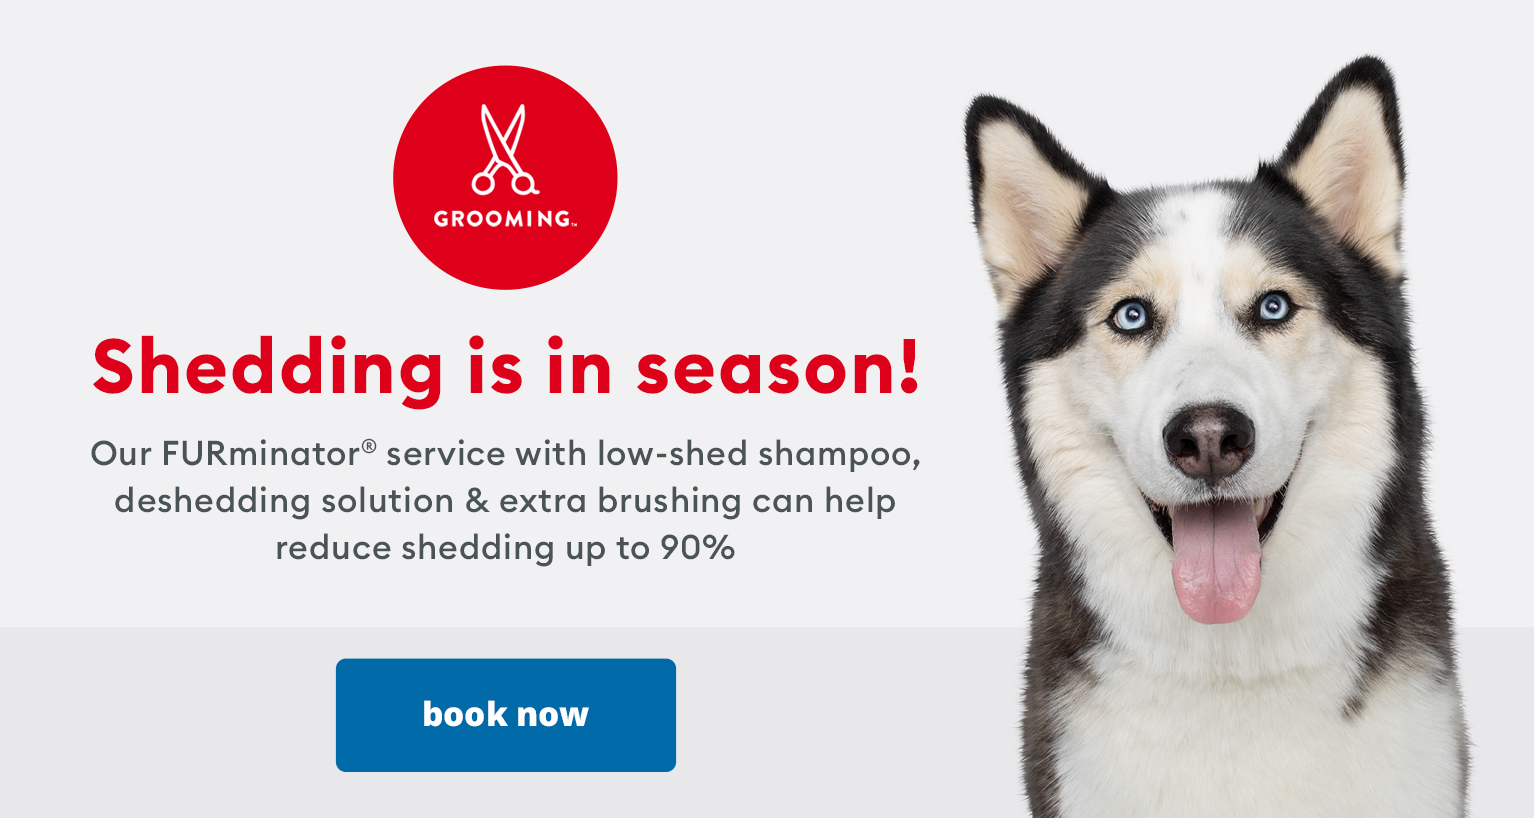 Shedding is in season, book now and reduce shedding up to 90%!